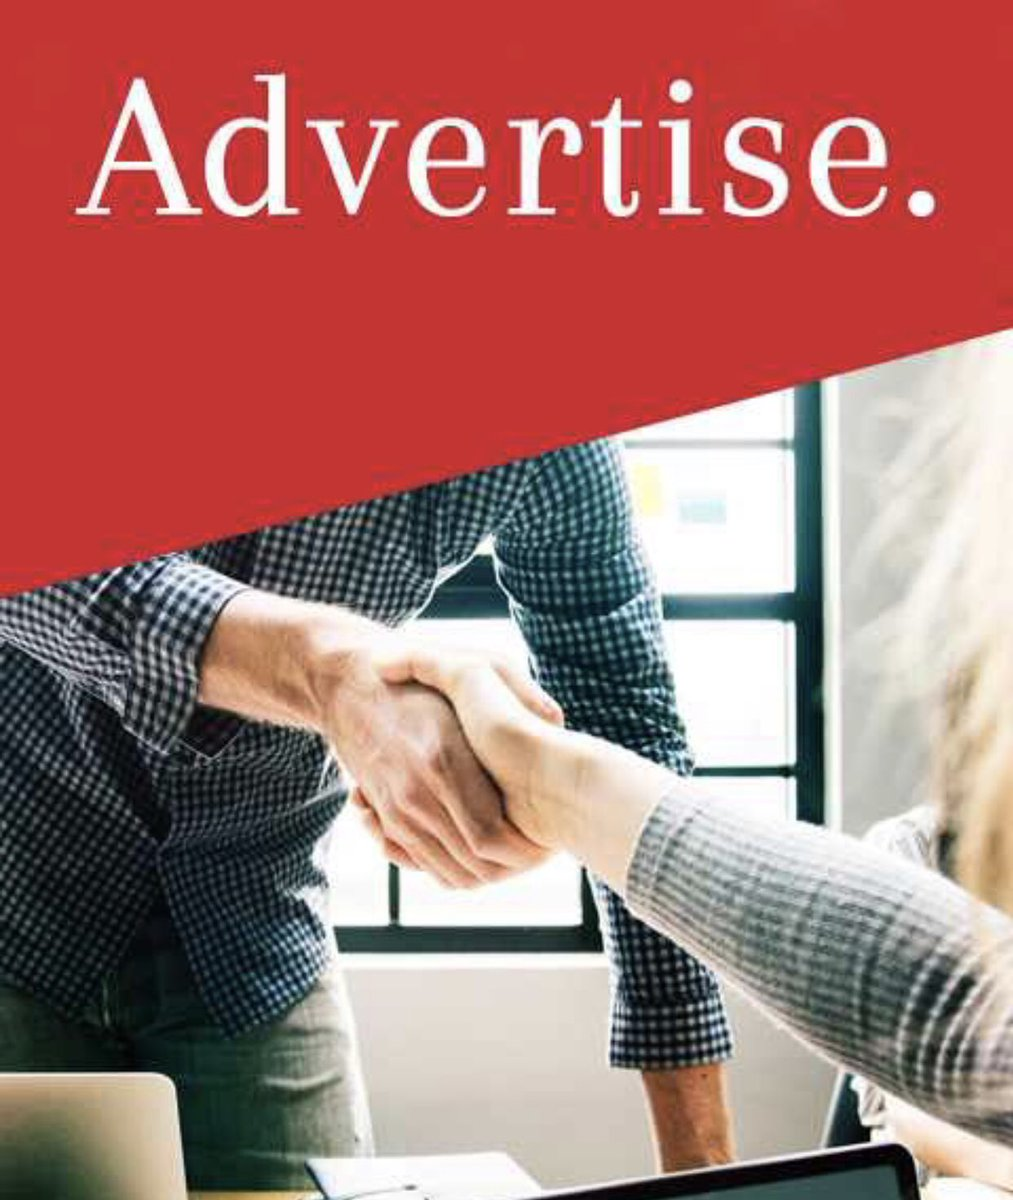 Advertise . . . Put your business directly into the hands of active spenders, opinion leaders, professionals and business owners in the Forth Valley Area.  . . . Contact sophie@17mag.com for advertising rates as next issue fast approaches.